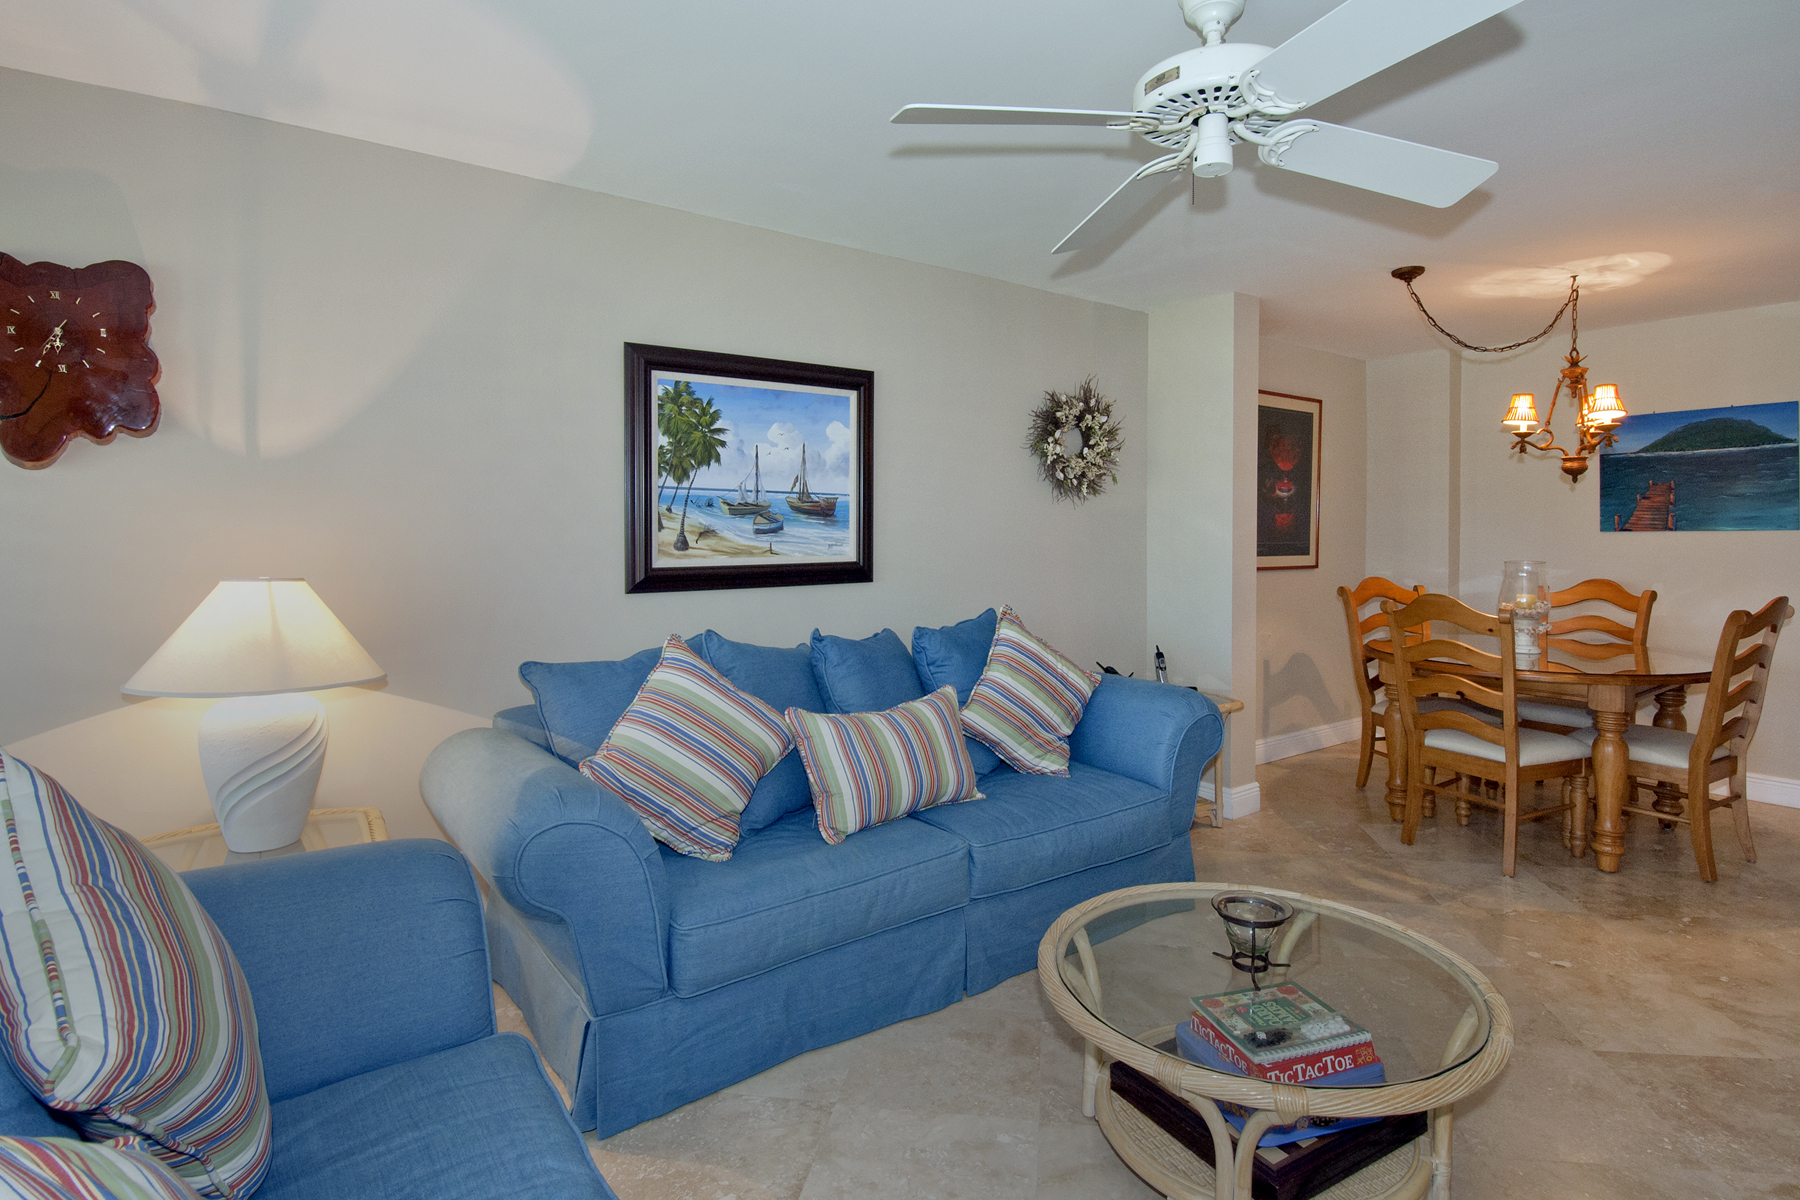 Condominio por un Venta en Canalfront Condominium at Ocean Reef 69 Anchor Drive, Unit B Ocean Reef Community, Key Largo, Florida, 33037 Estados Unidos